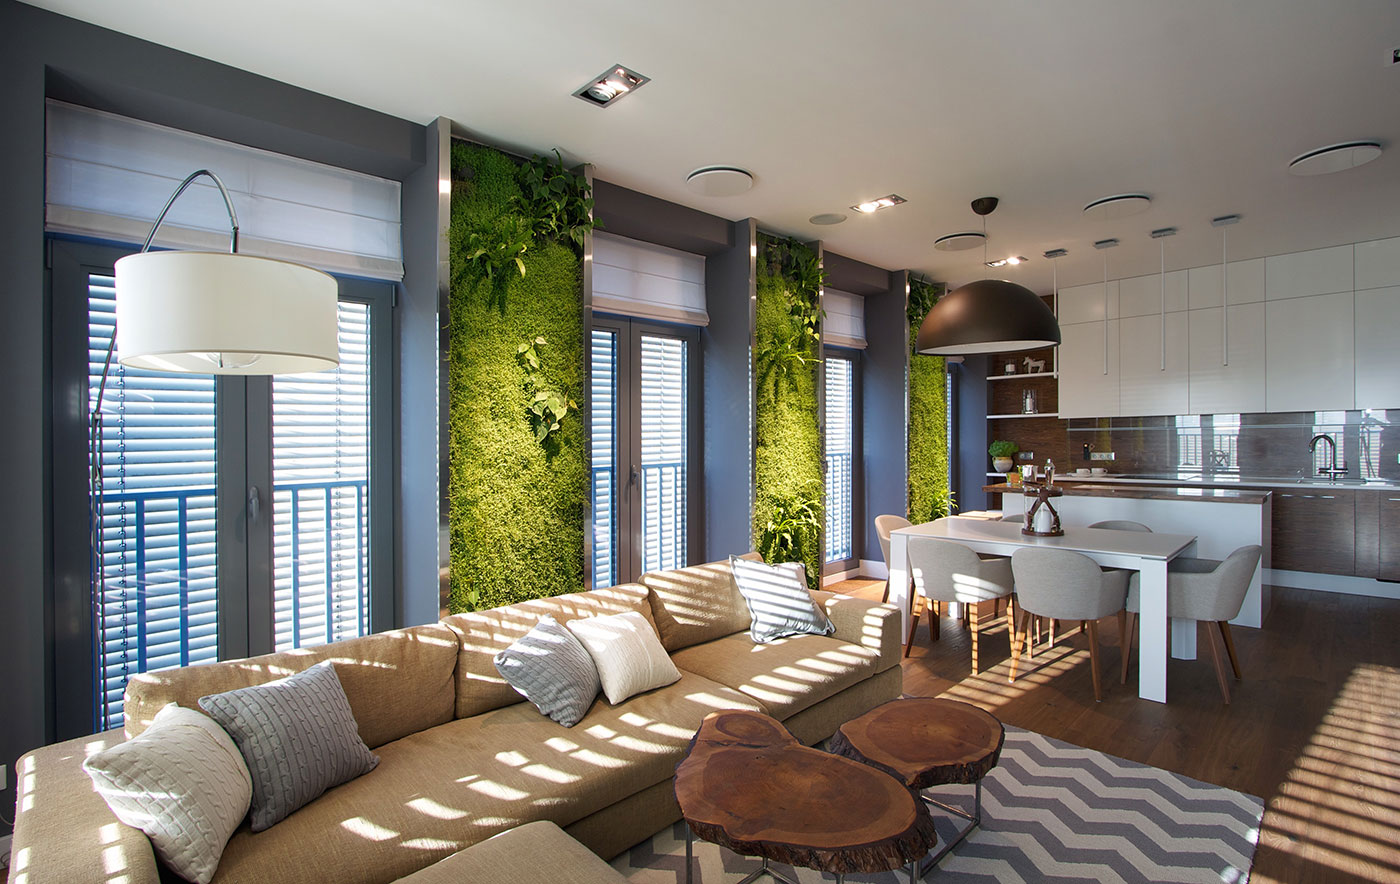 Stylish Contemporary Apartment with Interior Greenery